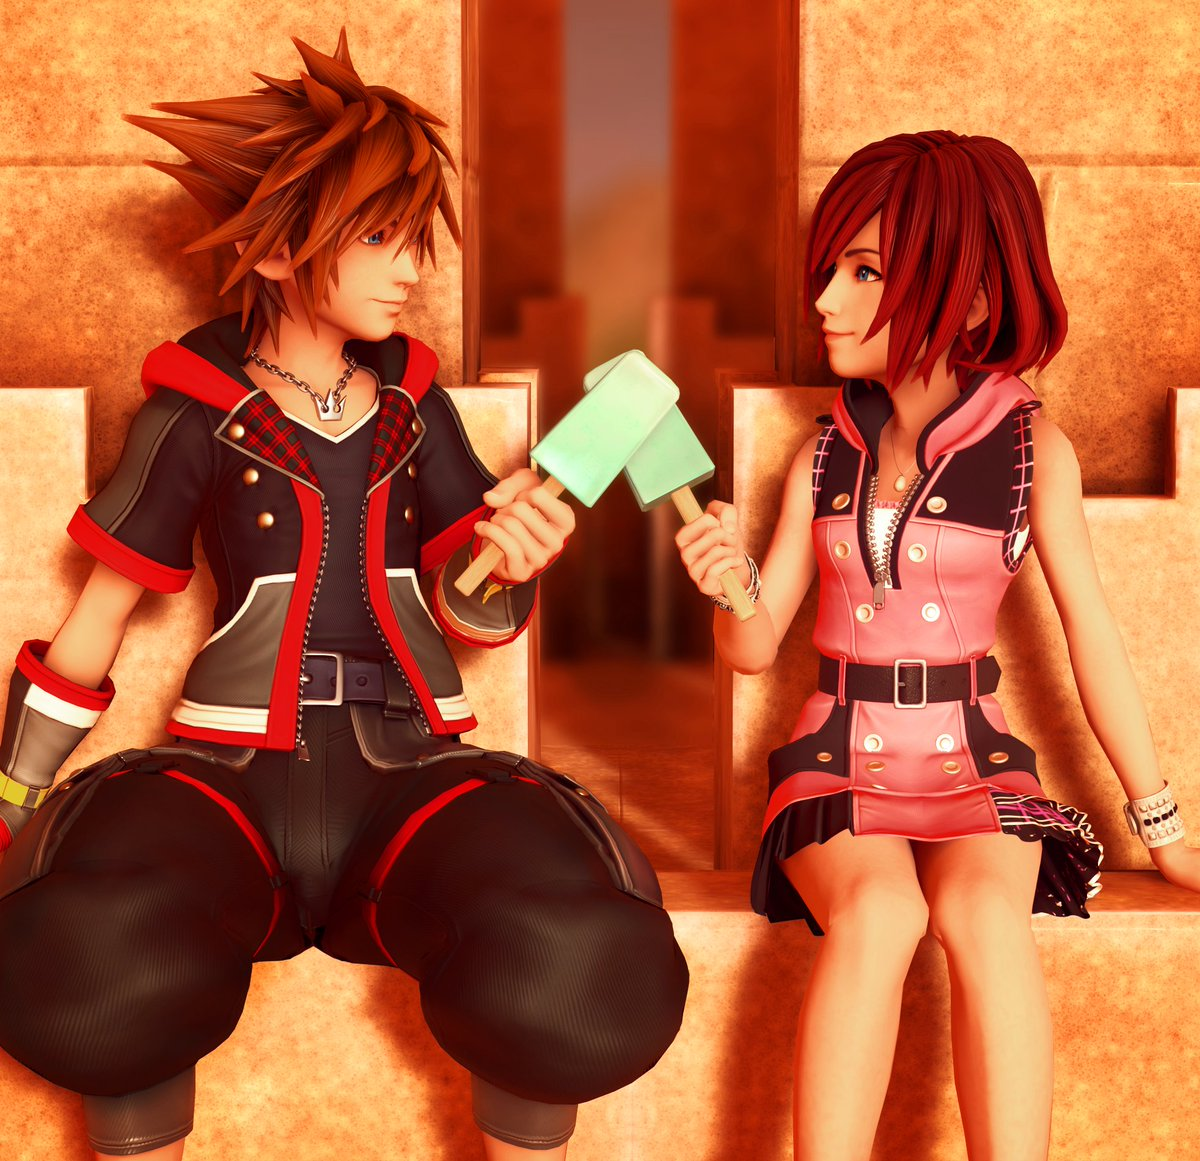 Sora and kairi in bed naked